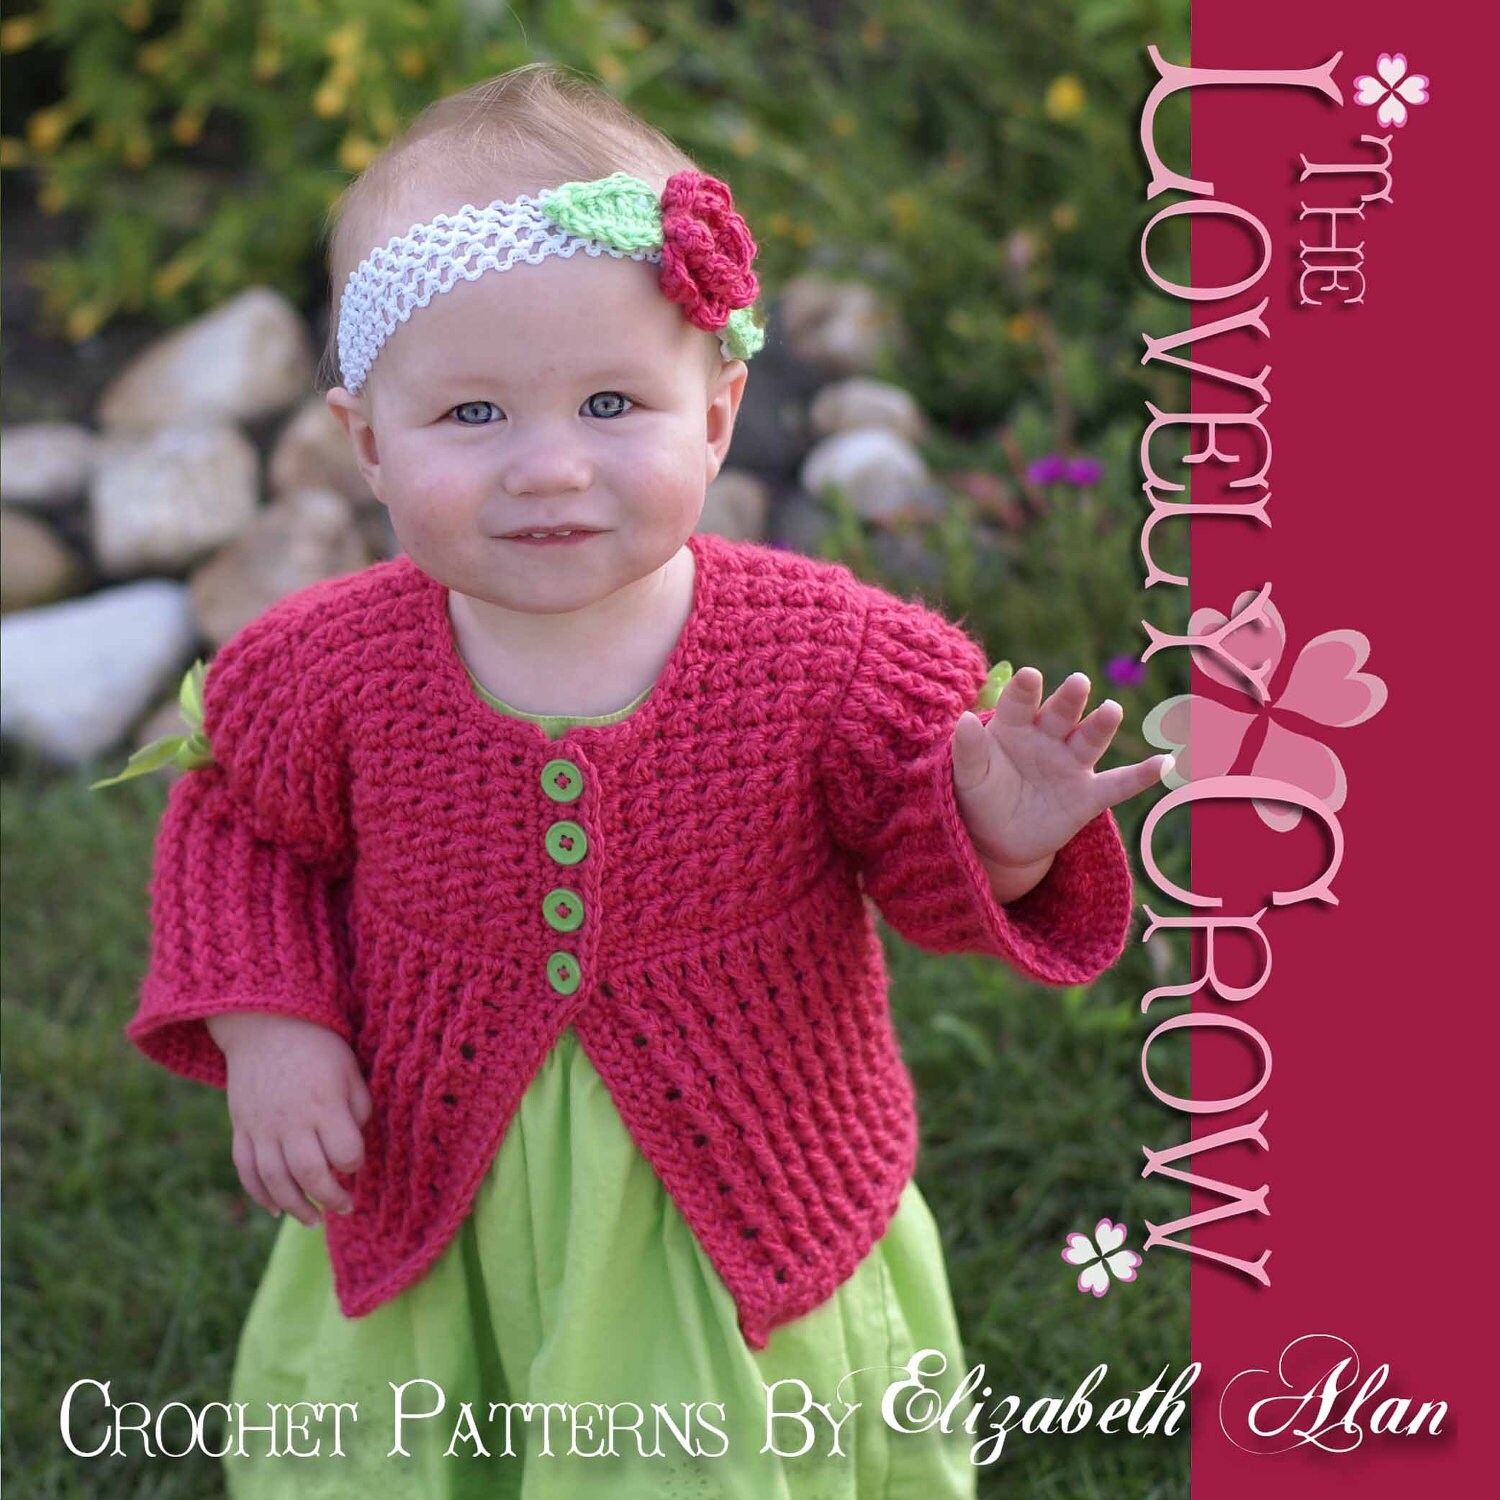 Baby Sweaters To Crochet Patterns : Baby Sweater Crochet Pattern Vest Sweater or Cardigan by ...